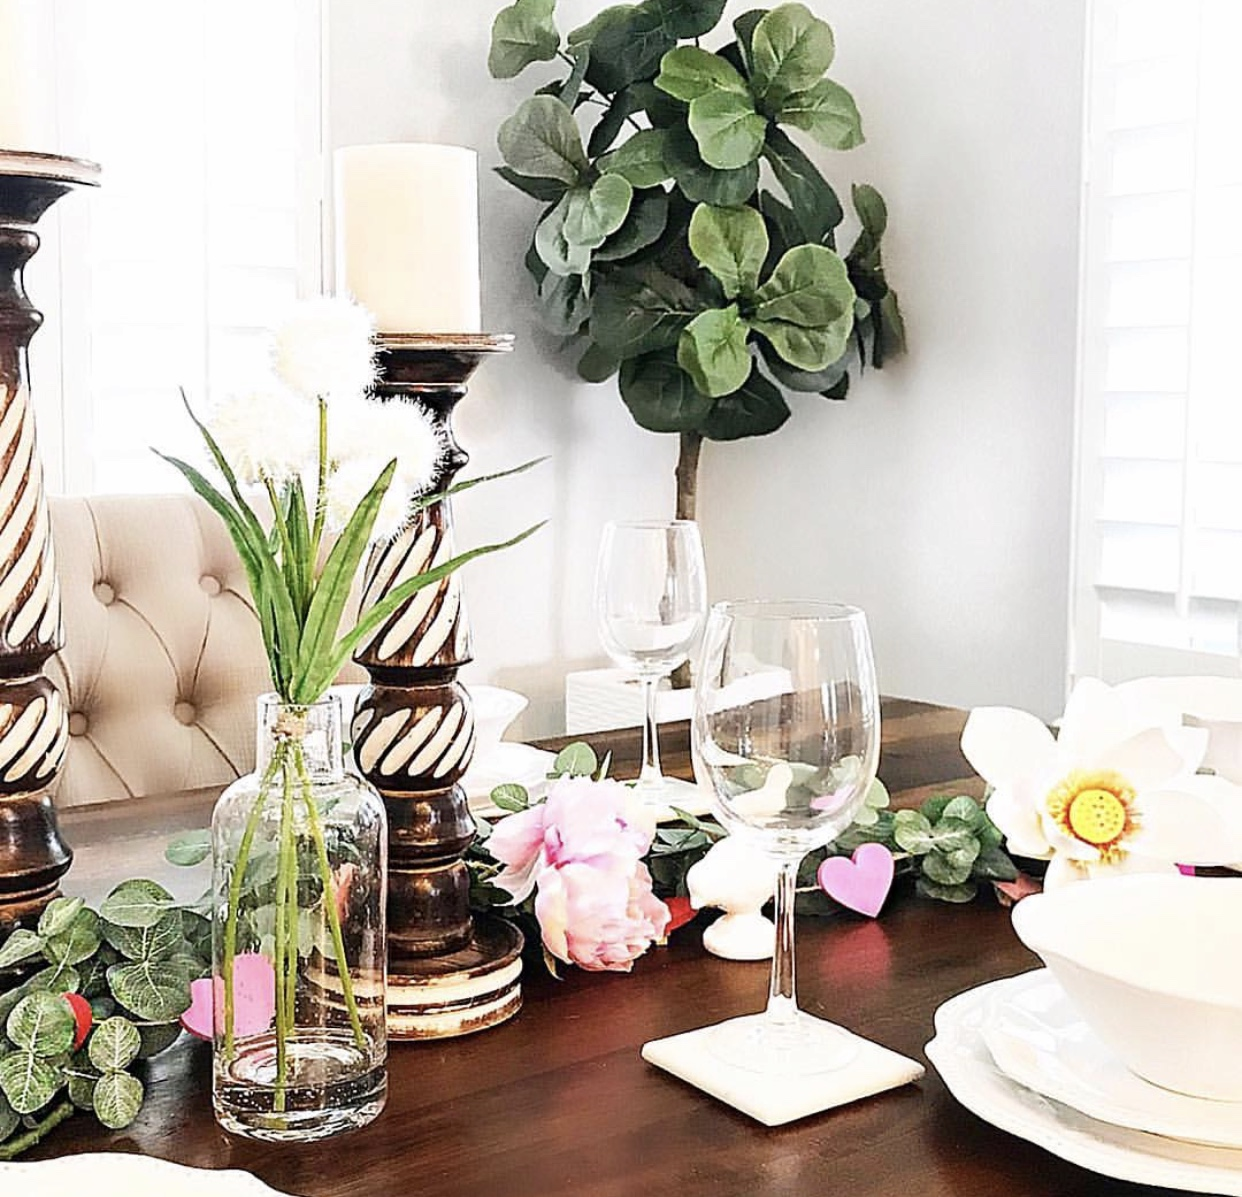 Top That! Spring Table Decor